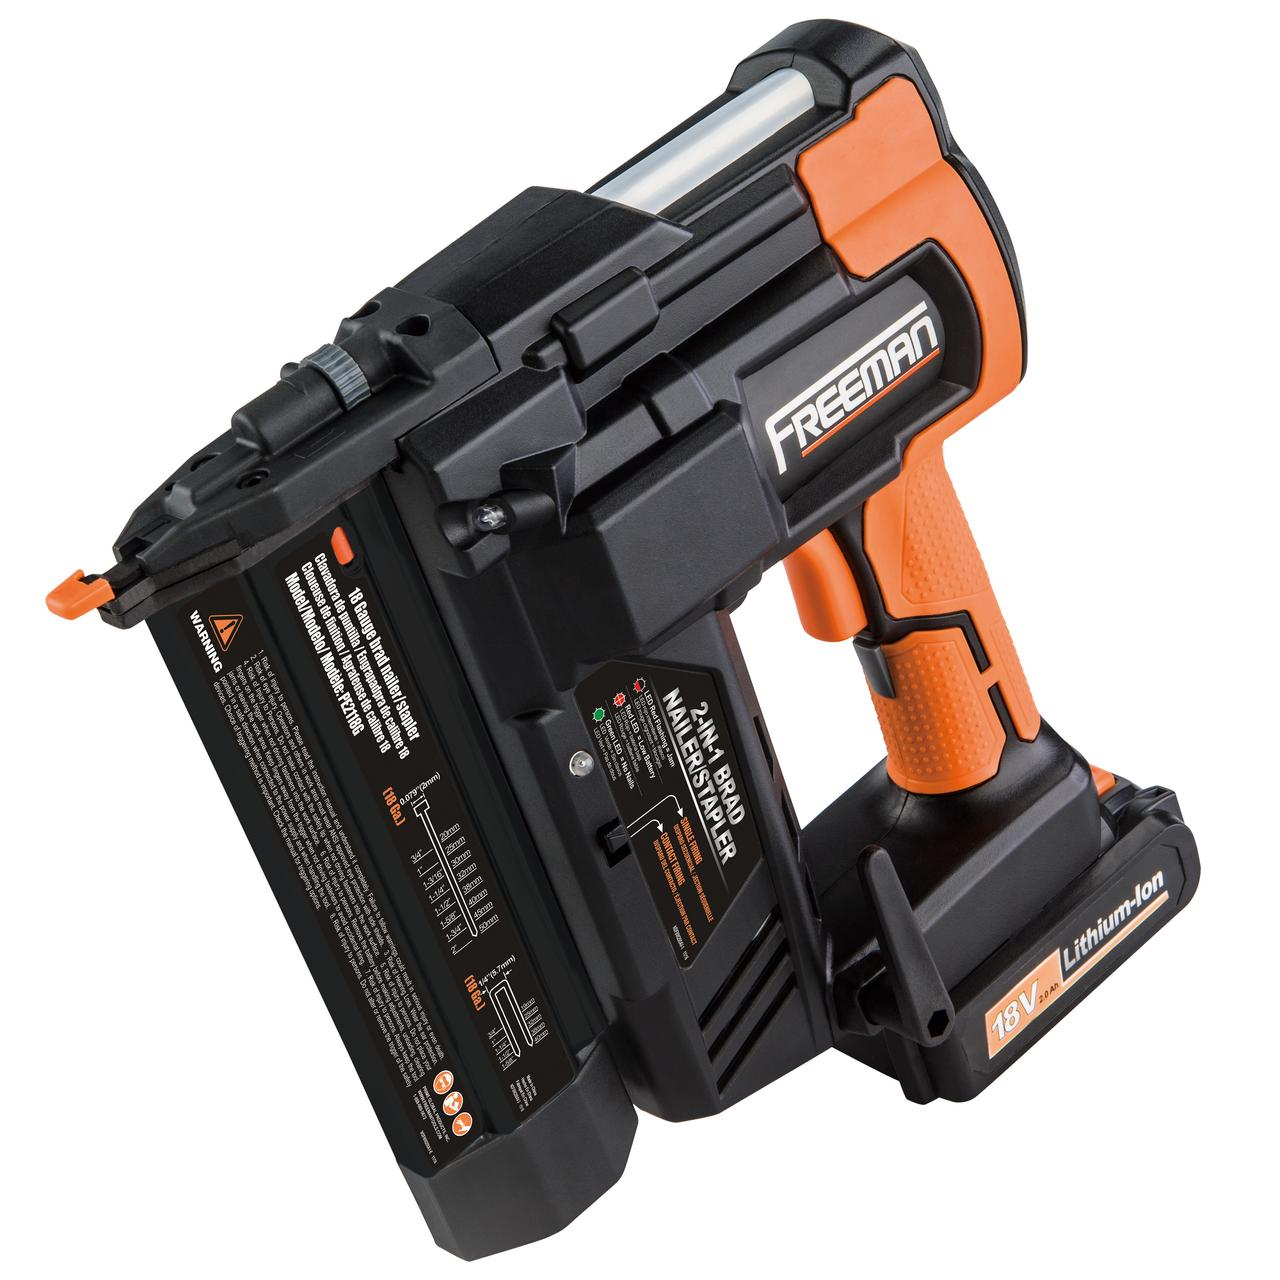 Freeman PE2118G 18 Volt 2 In 1 18 Gauge Cordless Nailer U0026 Stapler W